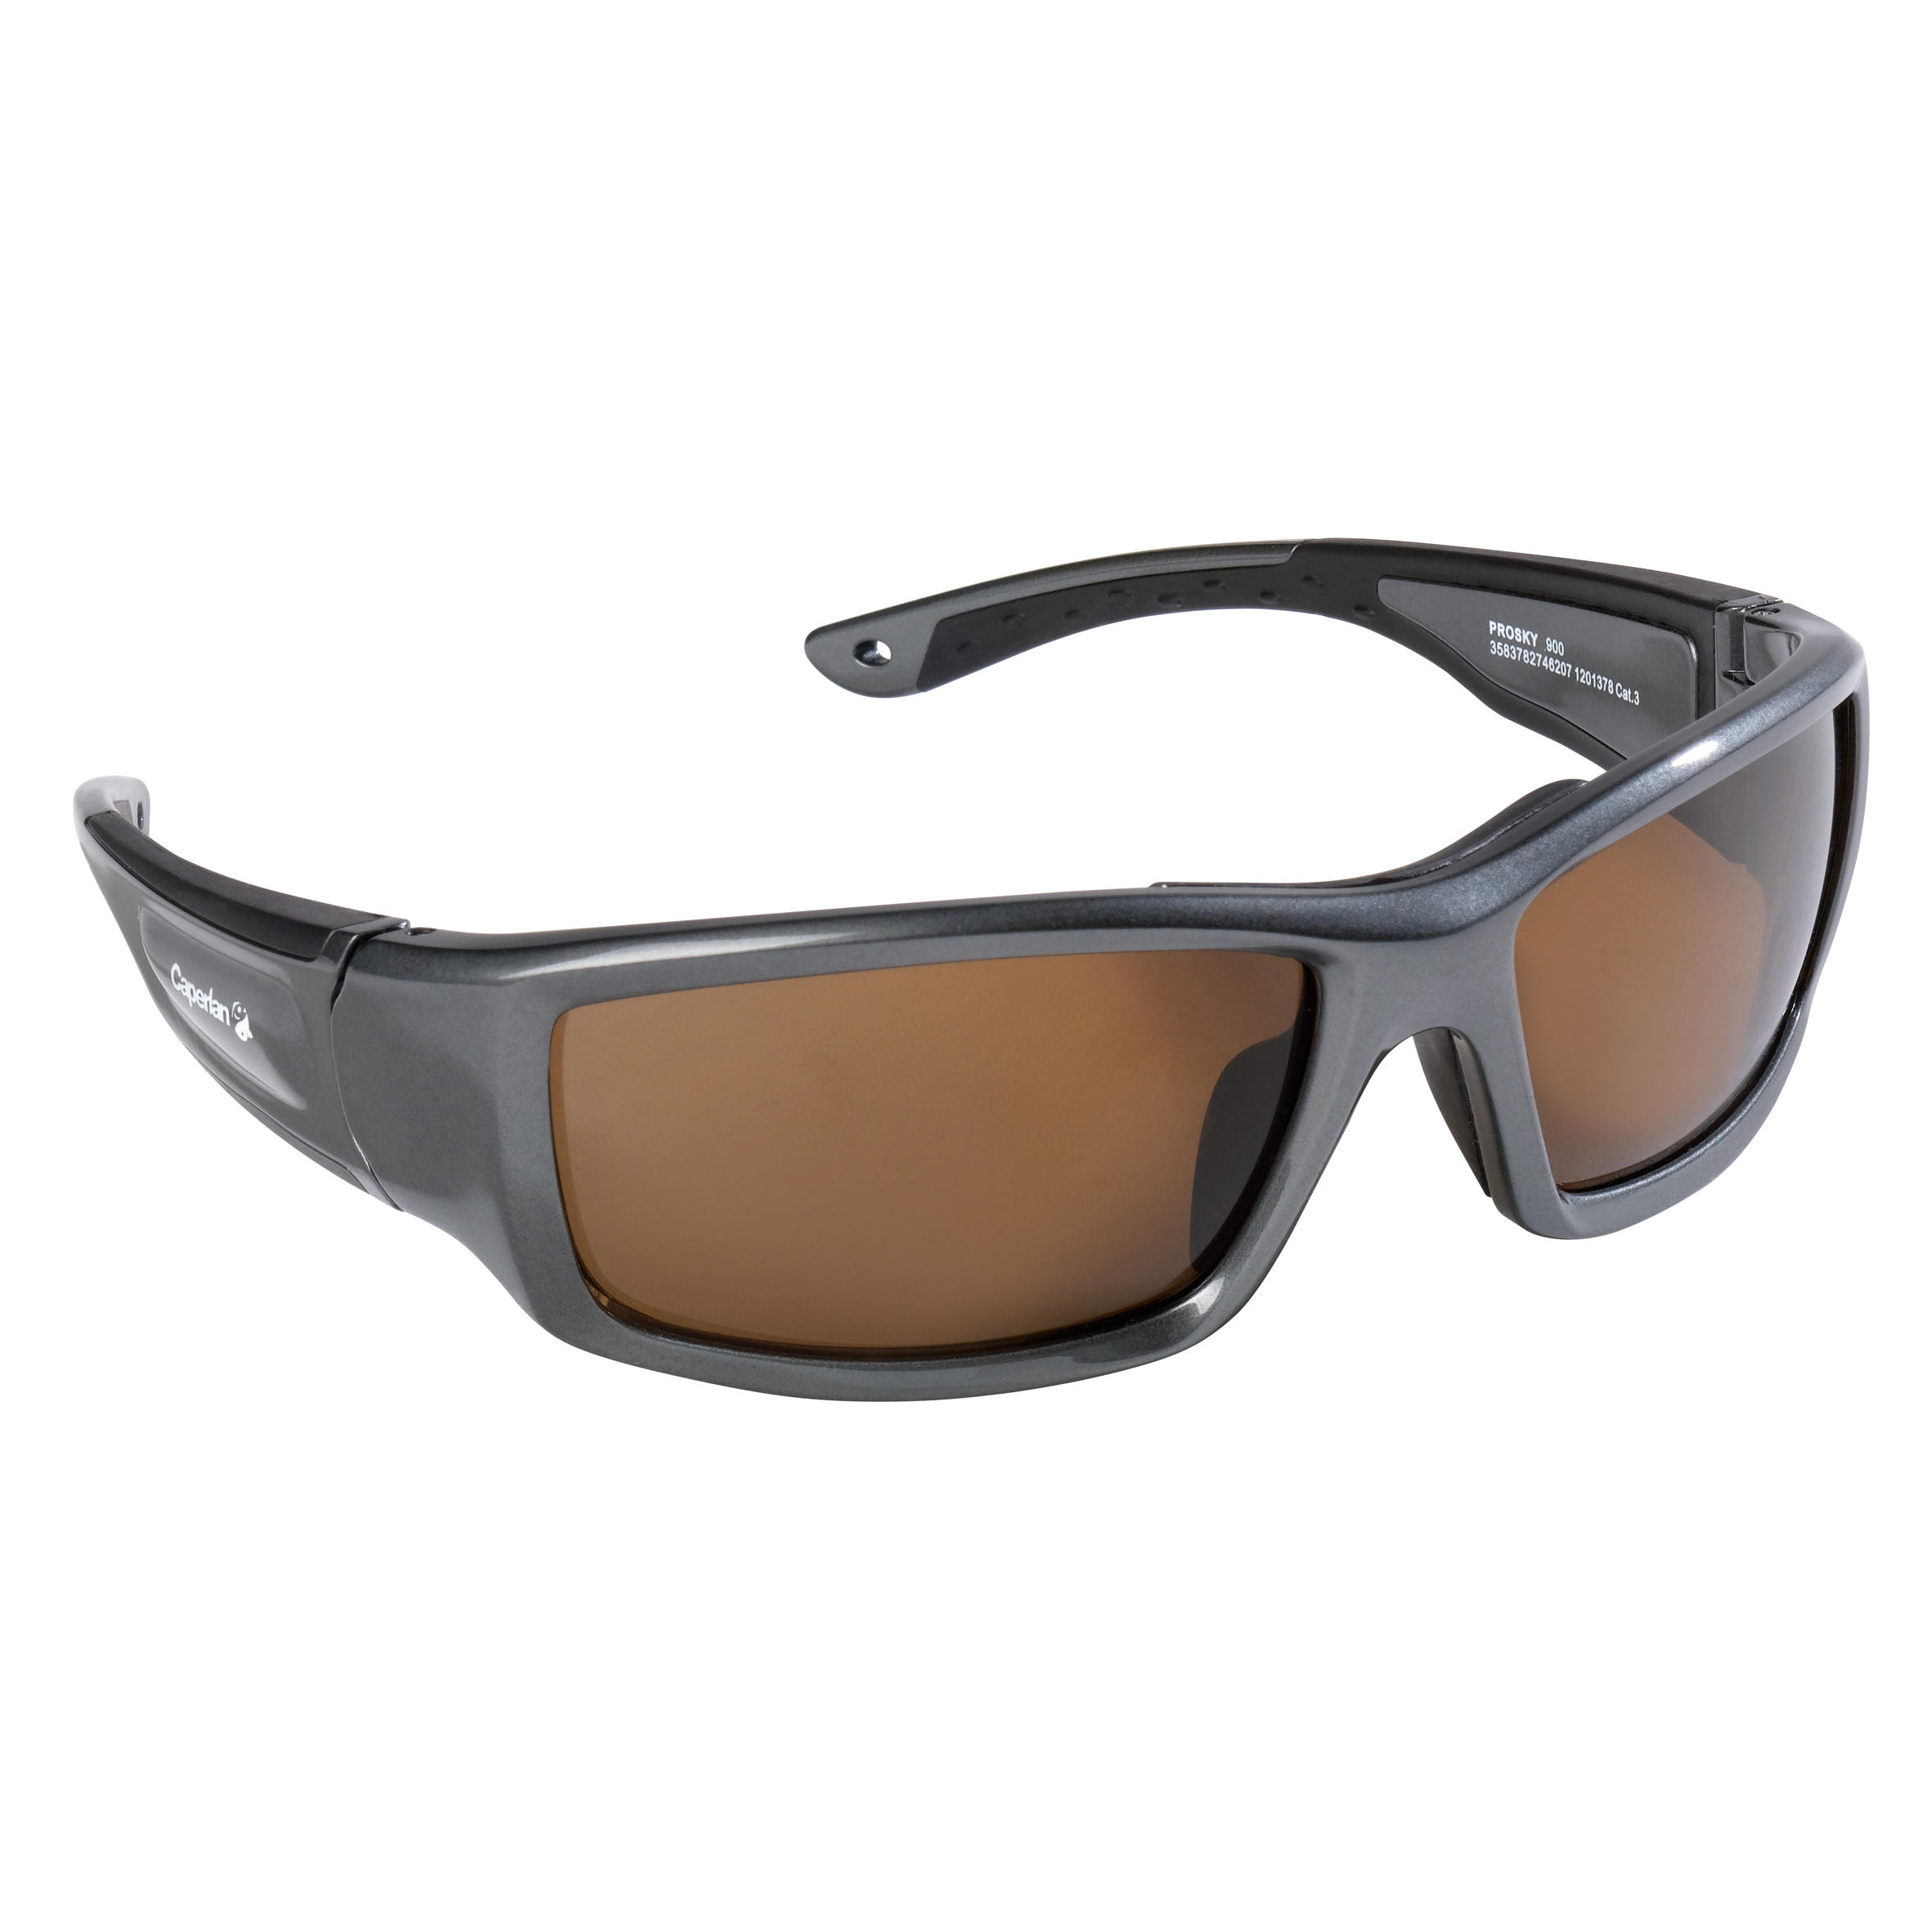 PROSKY polarized fishing glasses